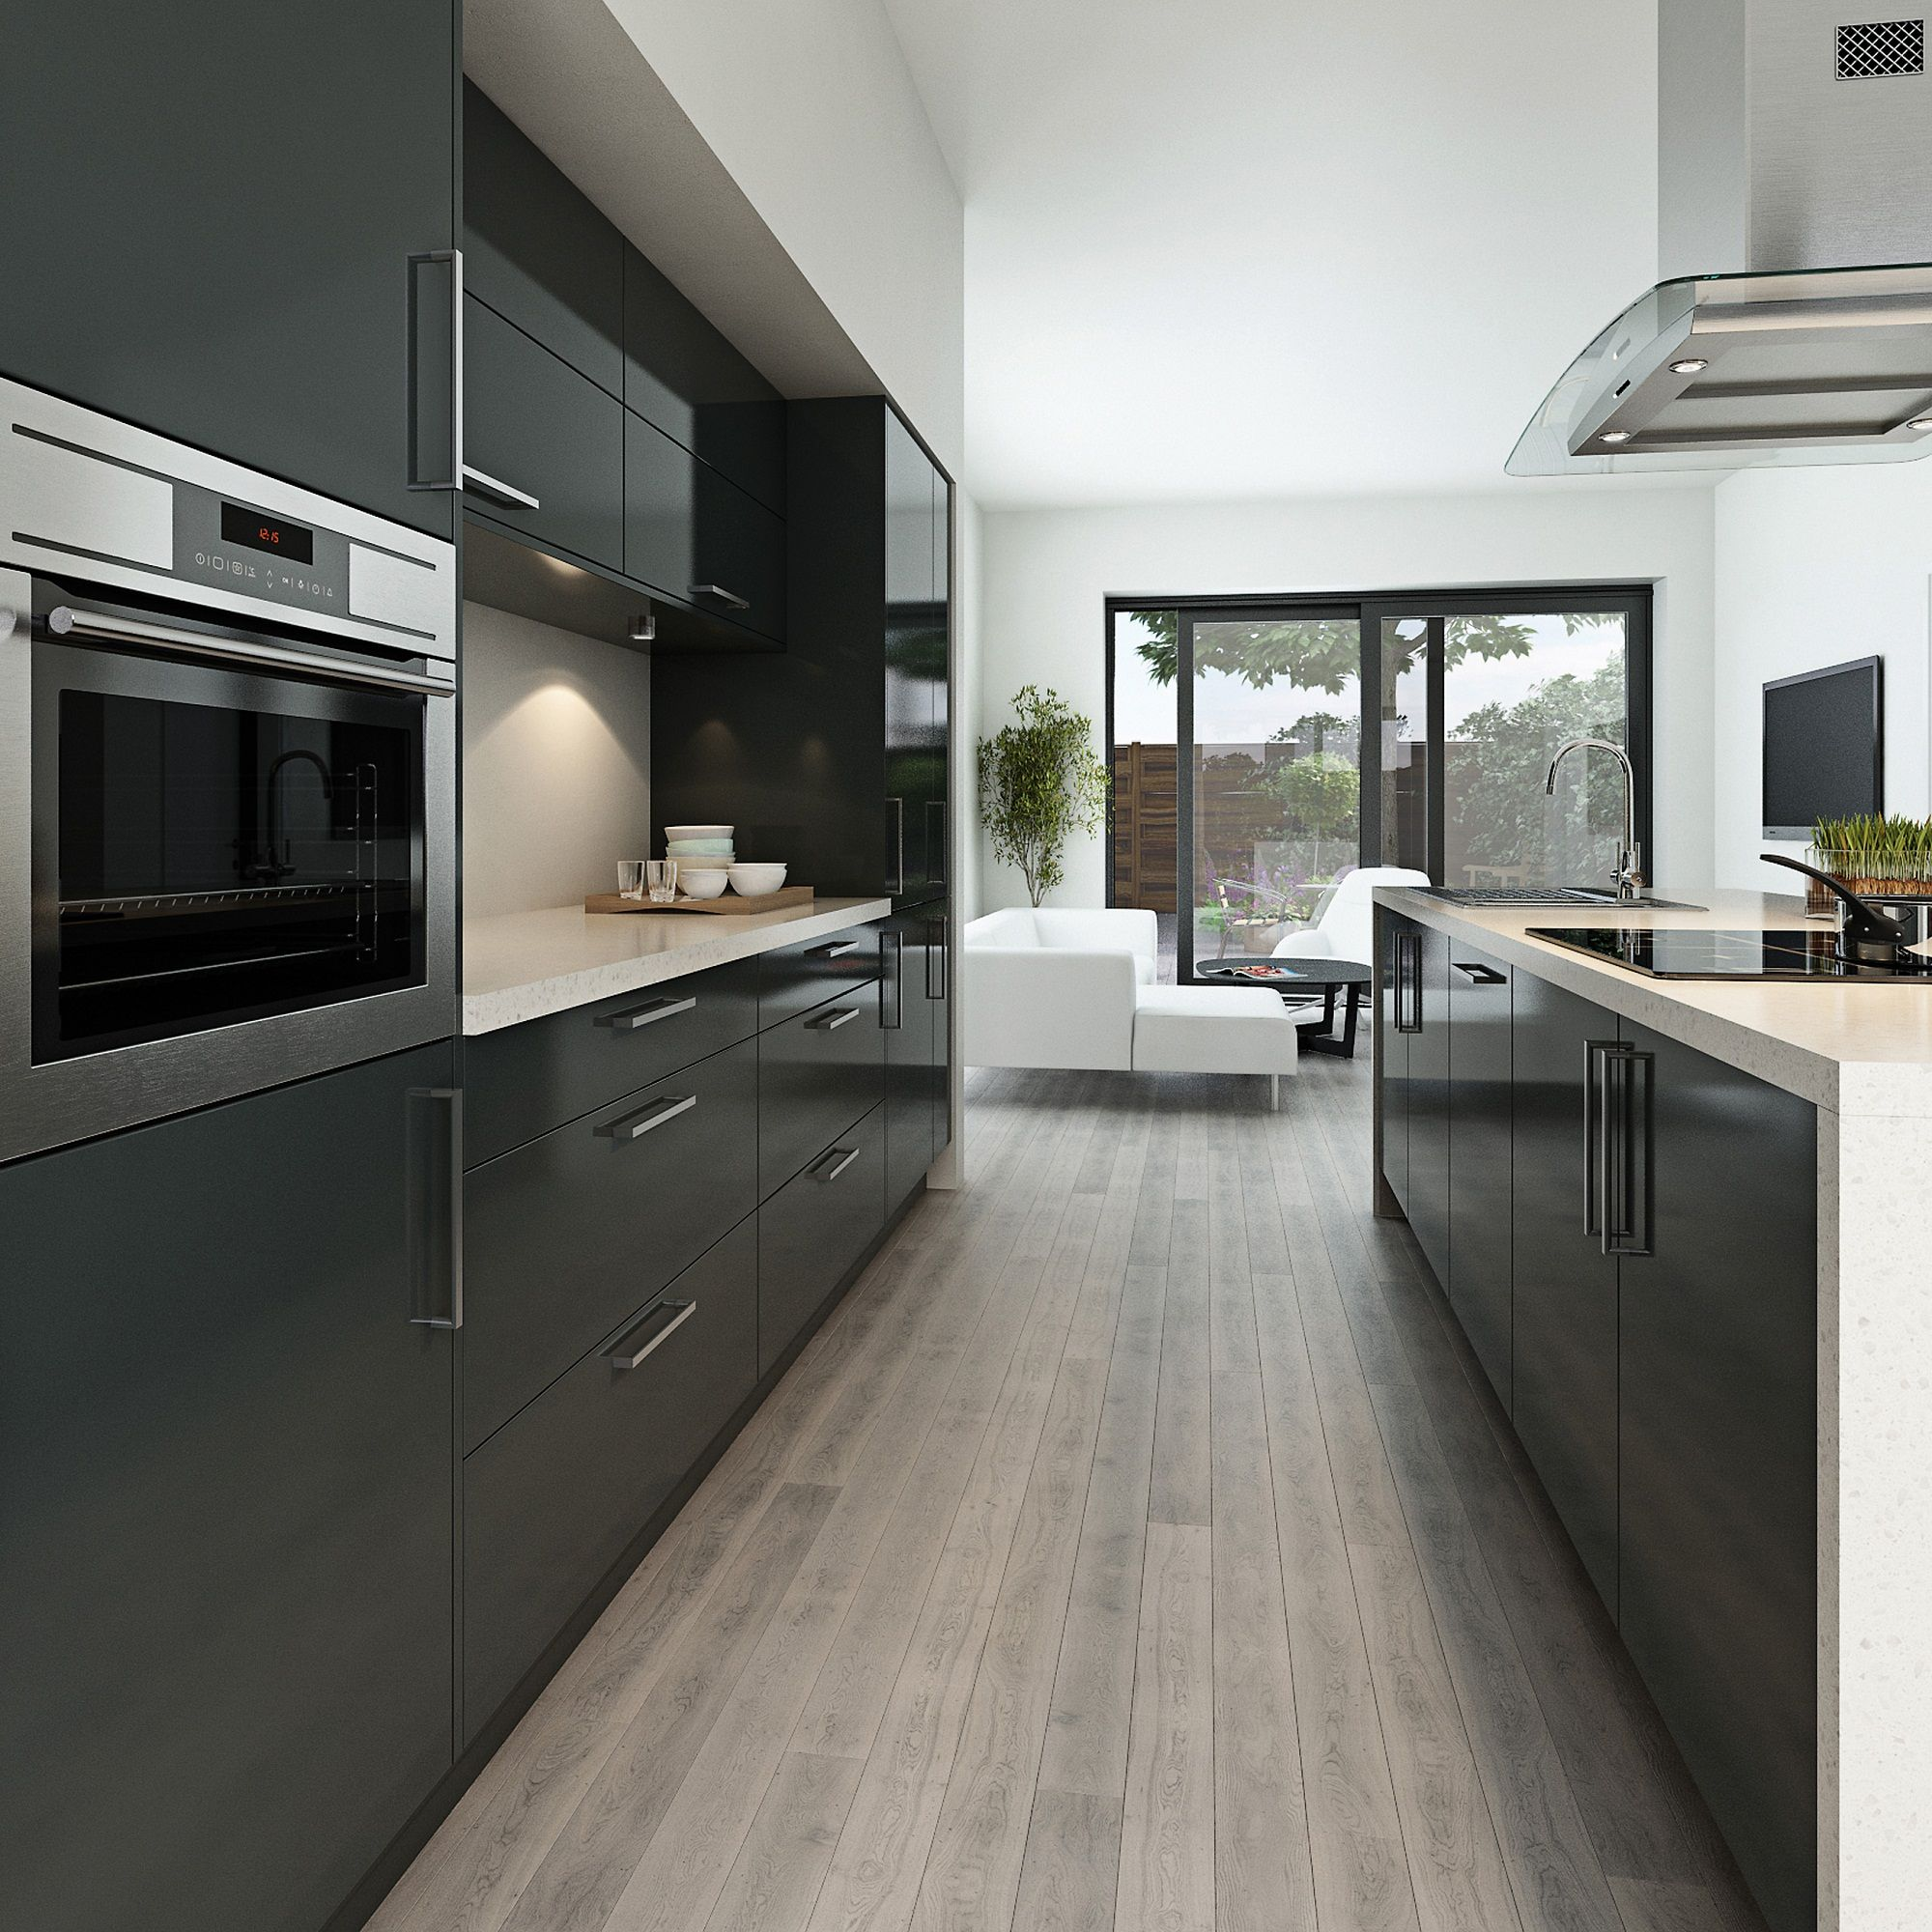 Maida Gloss Dark Grey Can Create A Modern Look For Any Kitchen Http Www Moores Co Uk Defi Modern Grey Kitchen Kitchen Inspiration Design Grey Kitchen Designs